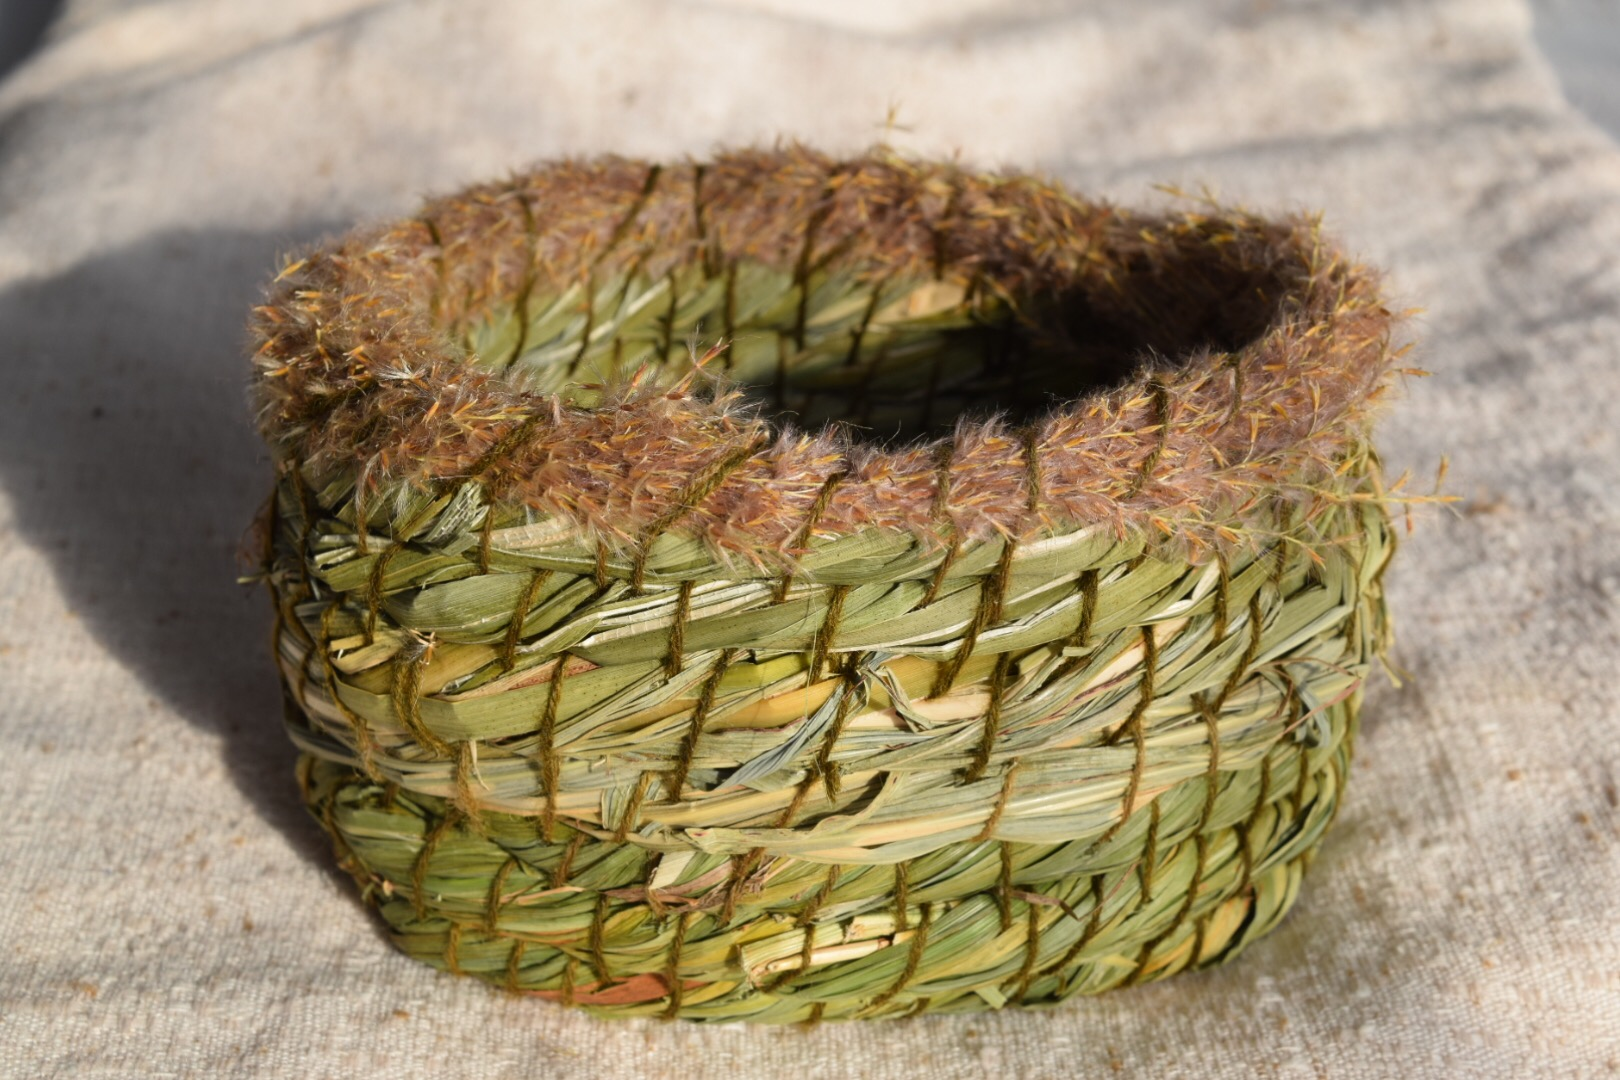 Coiled Basketry Workshop 1